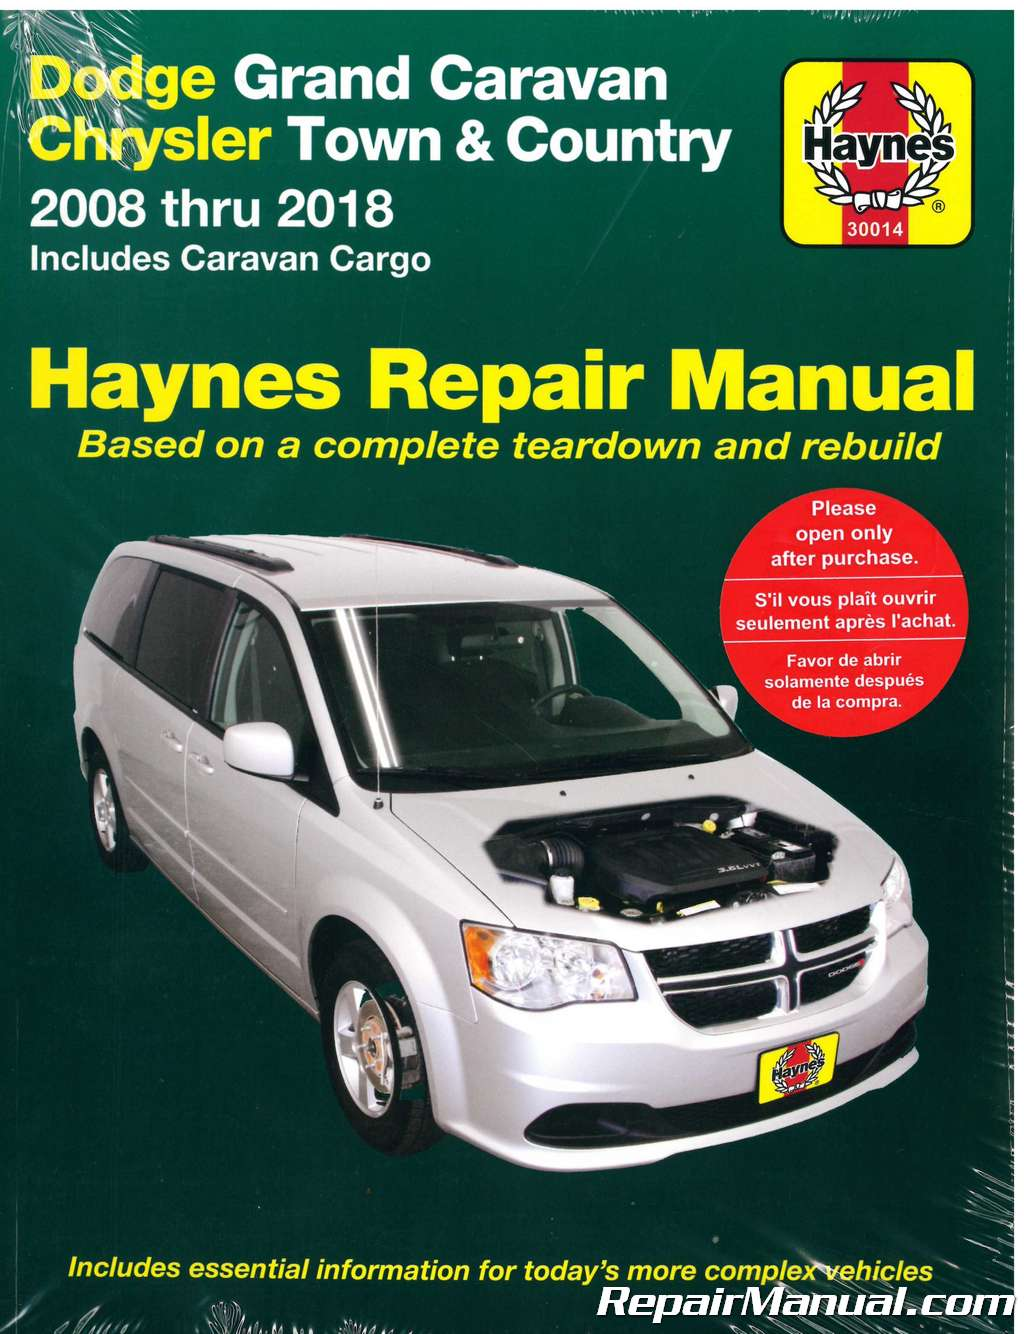 Dodge Grand Caravan Chrysler Town Country Van Haynes Car Repair Manual